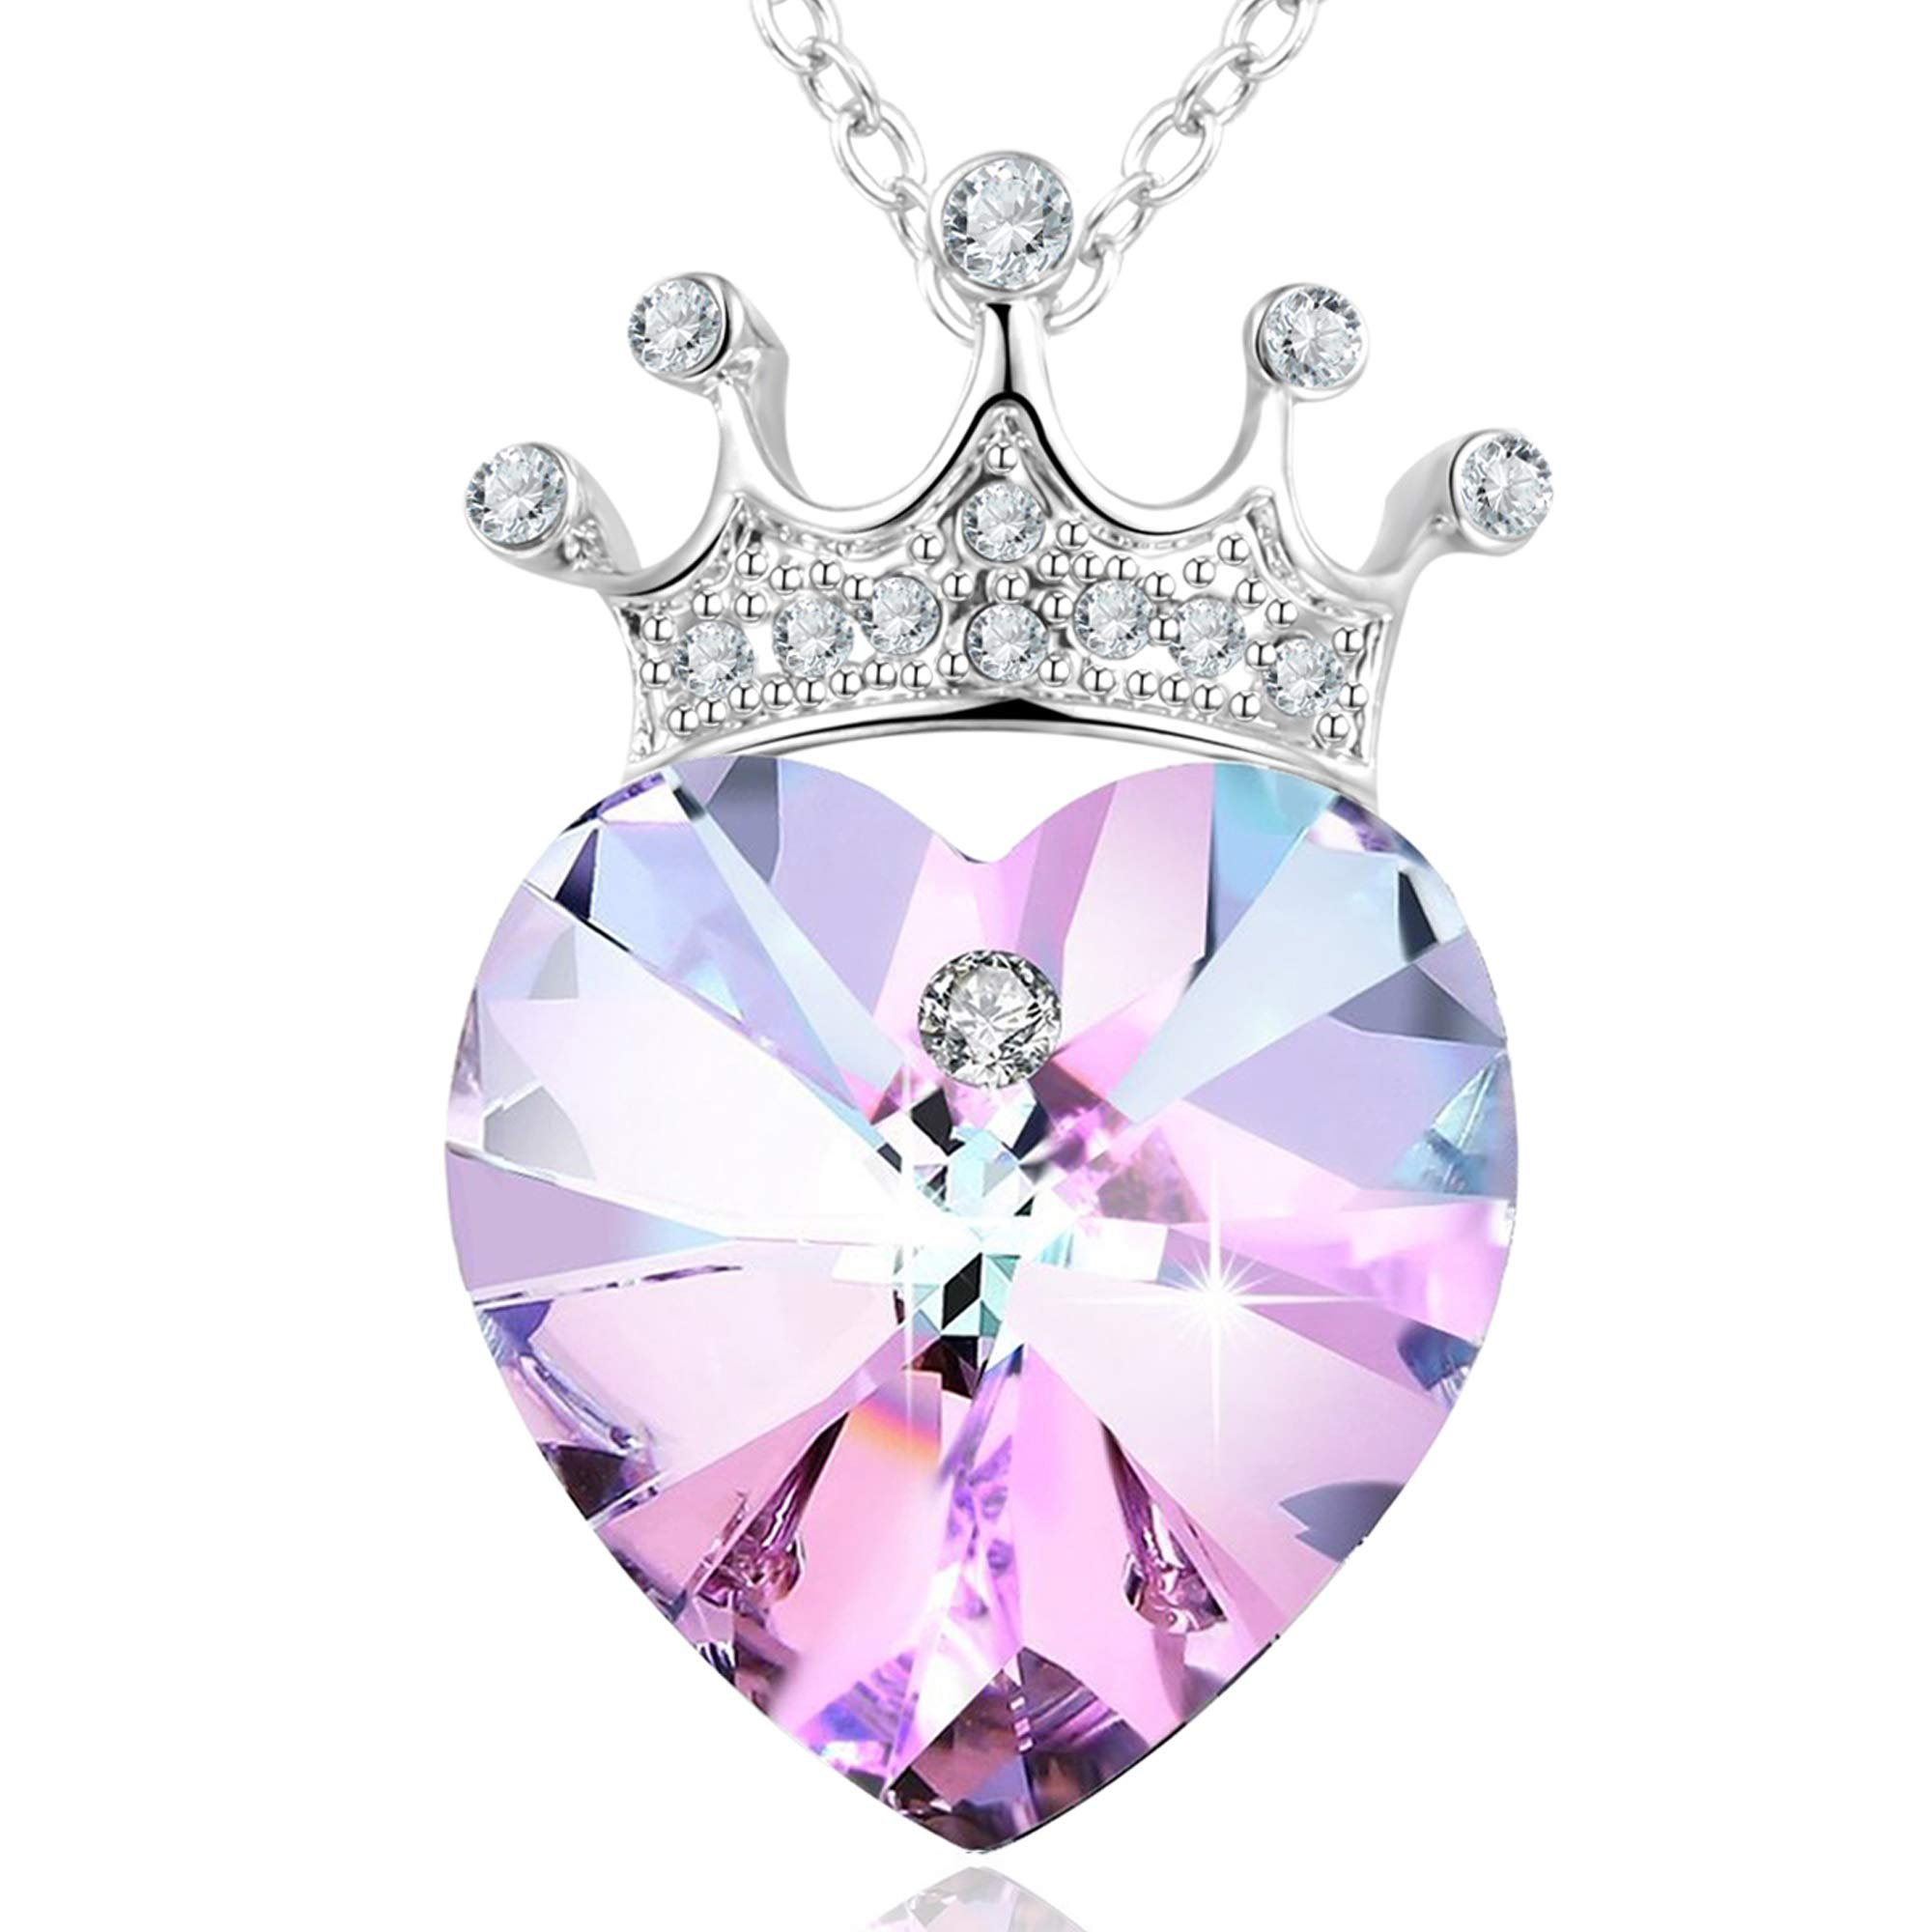 Angelady Love Queen Crown Purple Love Heart Pendant Necklace Chain with Amethyst for Women Girls, Gift for Mother Mom Wife Girlfriend, Crystal from Swarovski